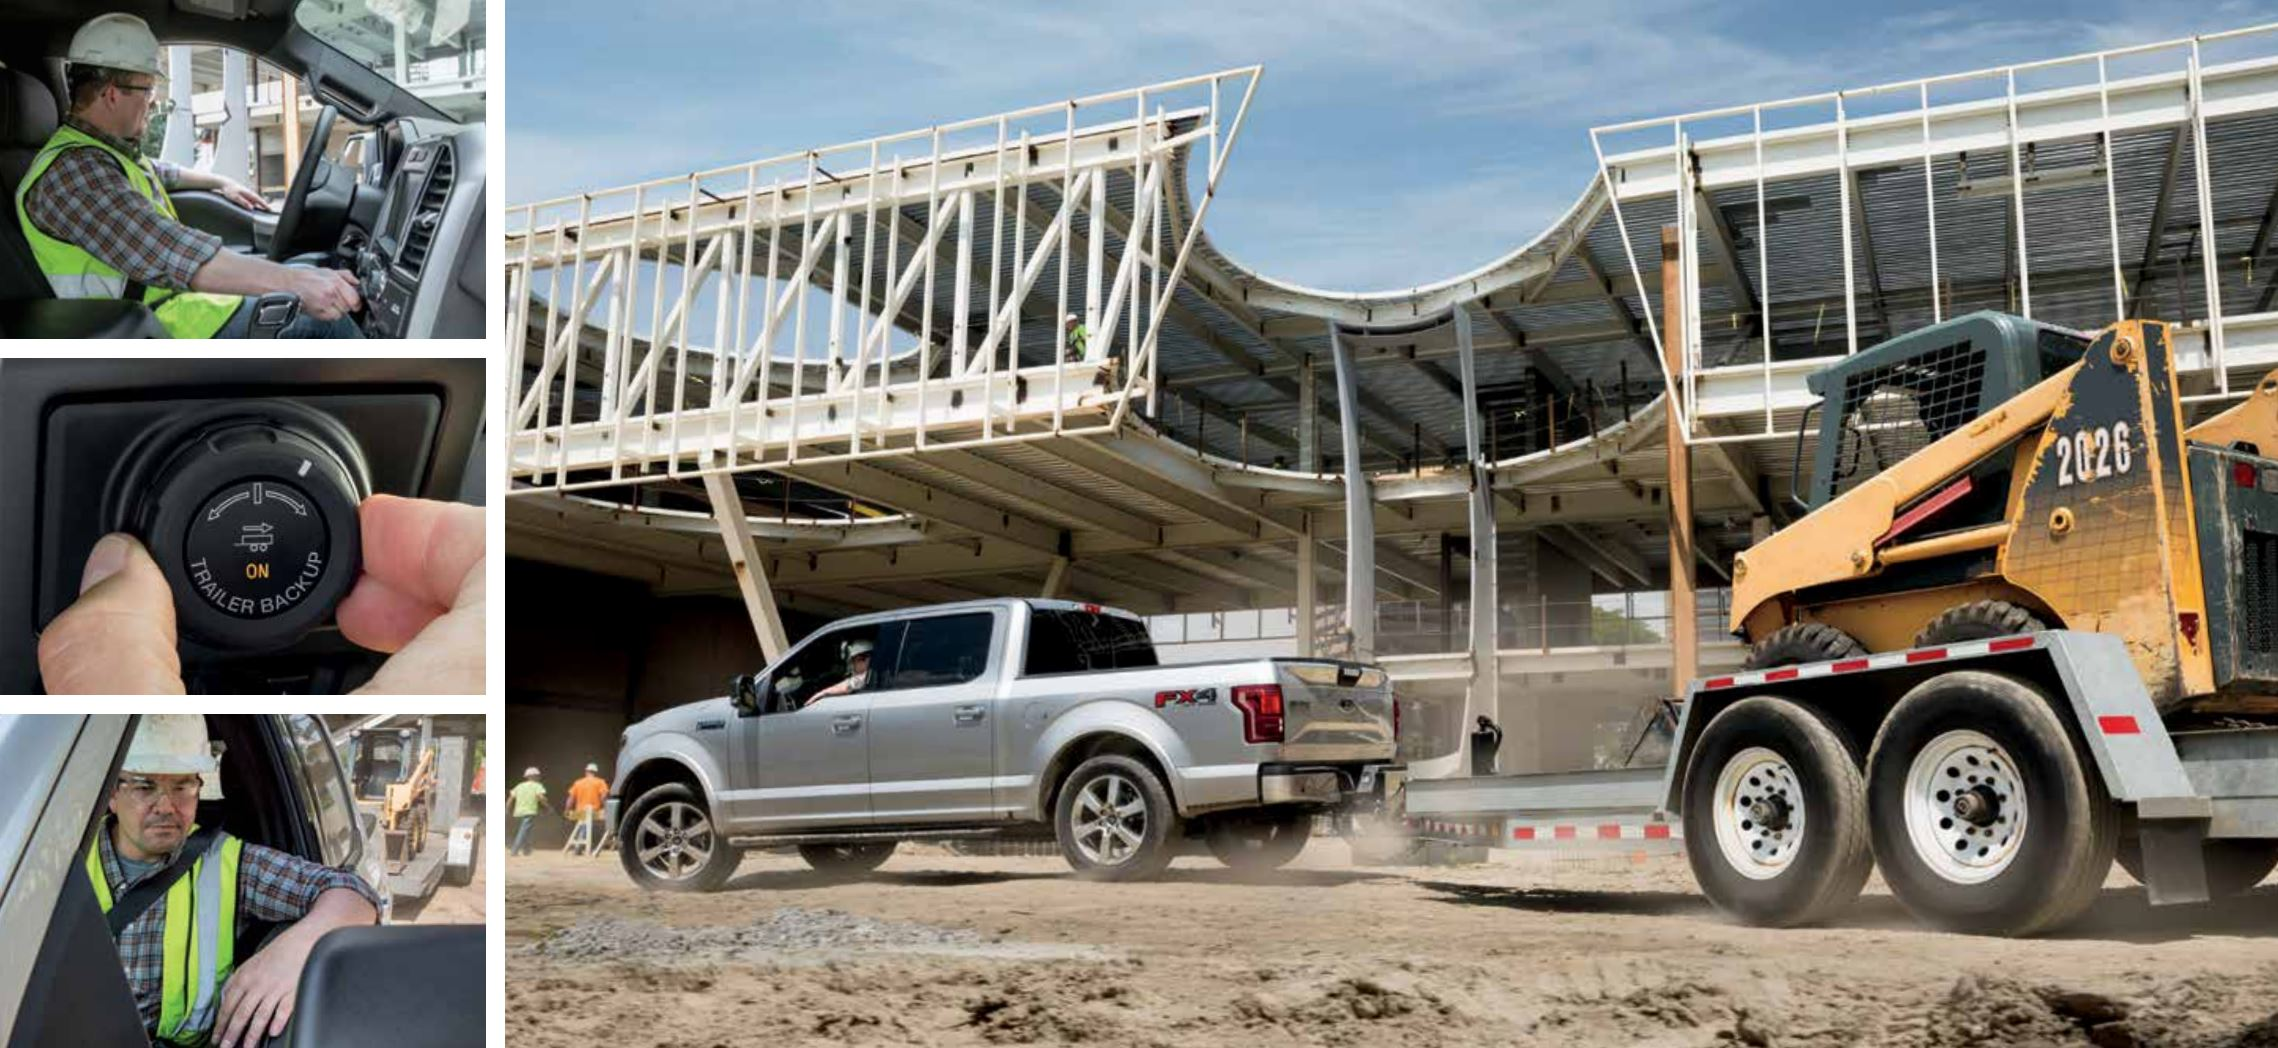 f 150 ford truck construction site kanata